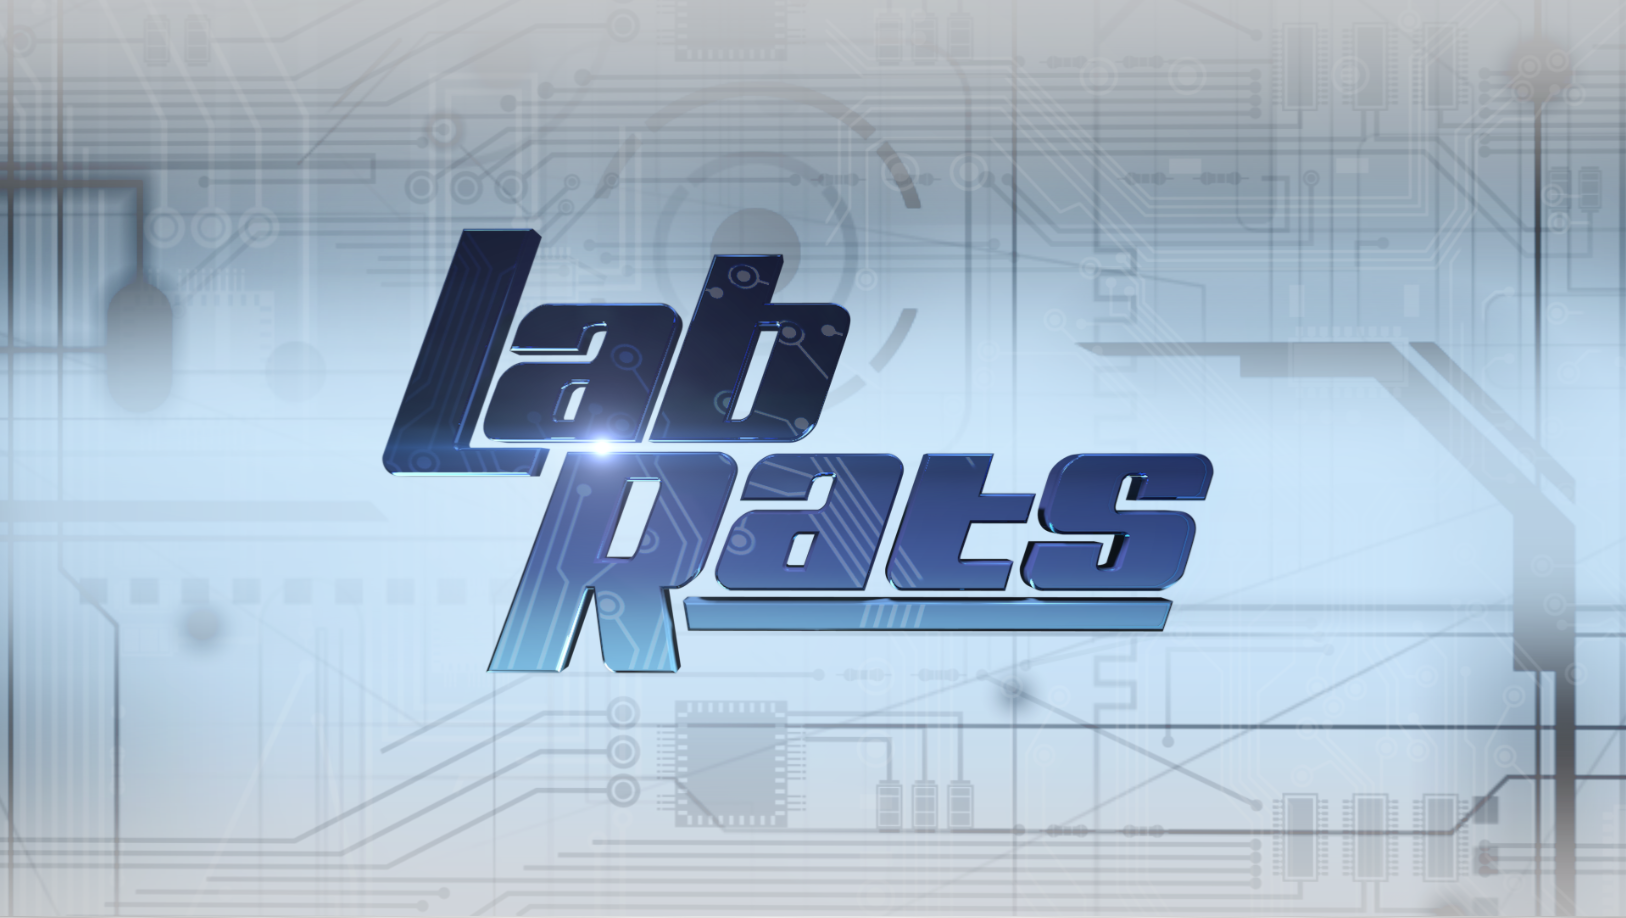 Disney Lab Rats By Carl Rabanes At Coroflot Com